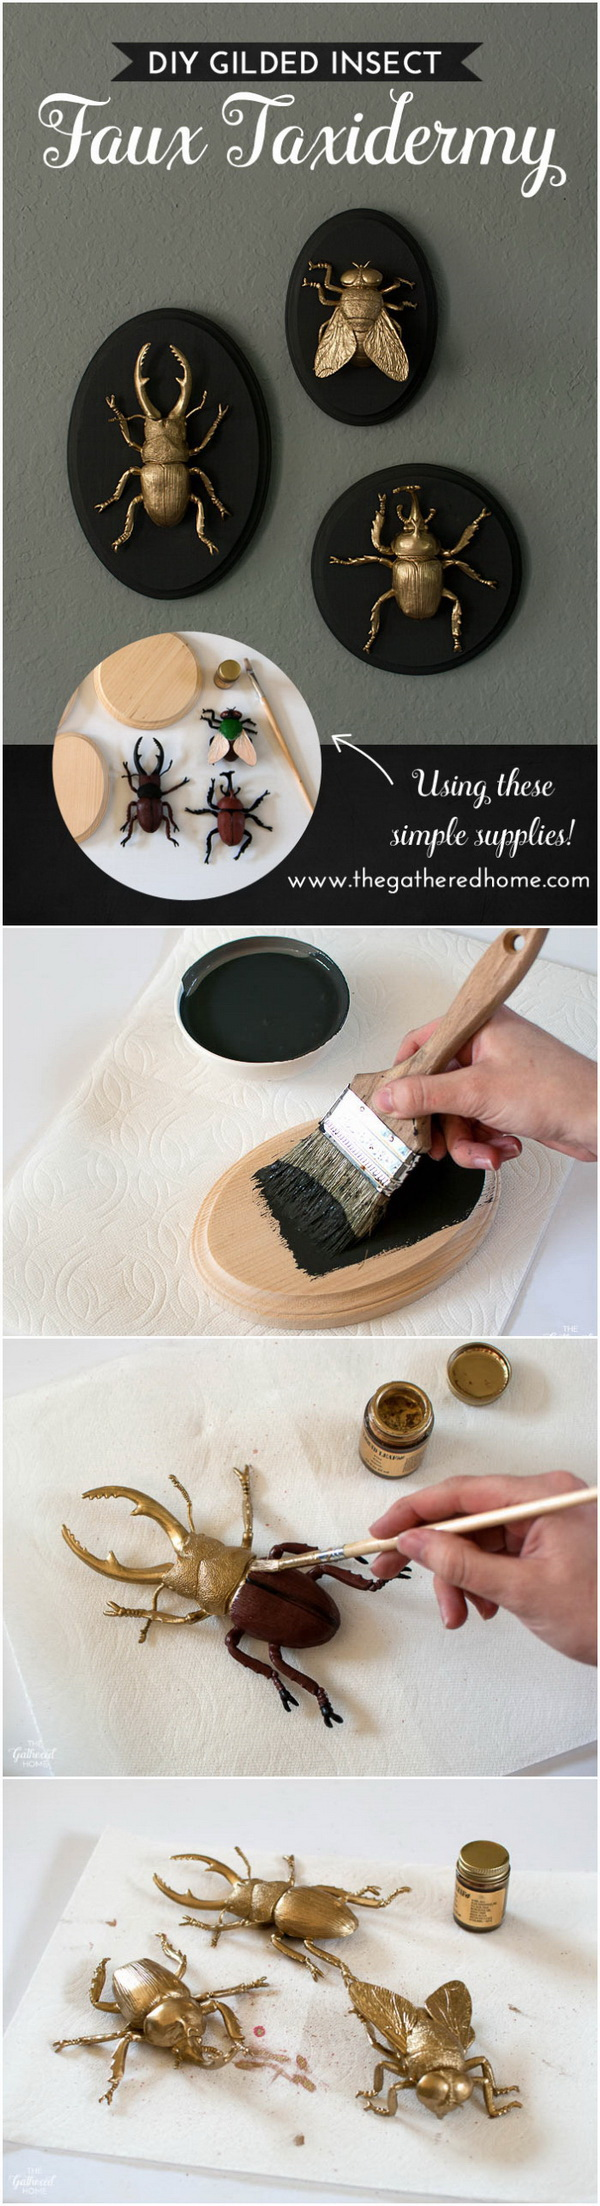 DIY Gilded Insect Faux Taxidermy. Make a crazy, glam 3D addition to my living room with these gilded insect art pieces!